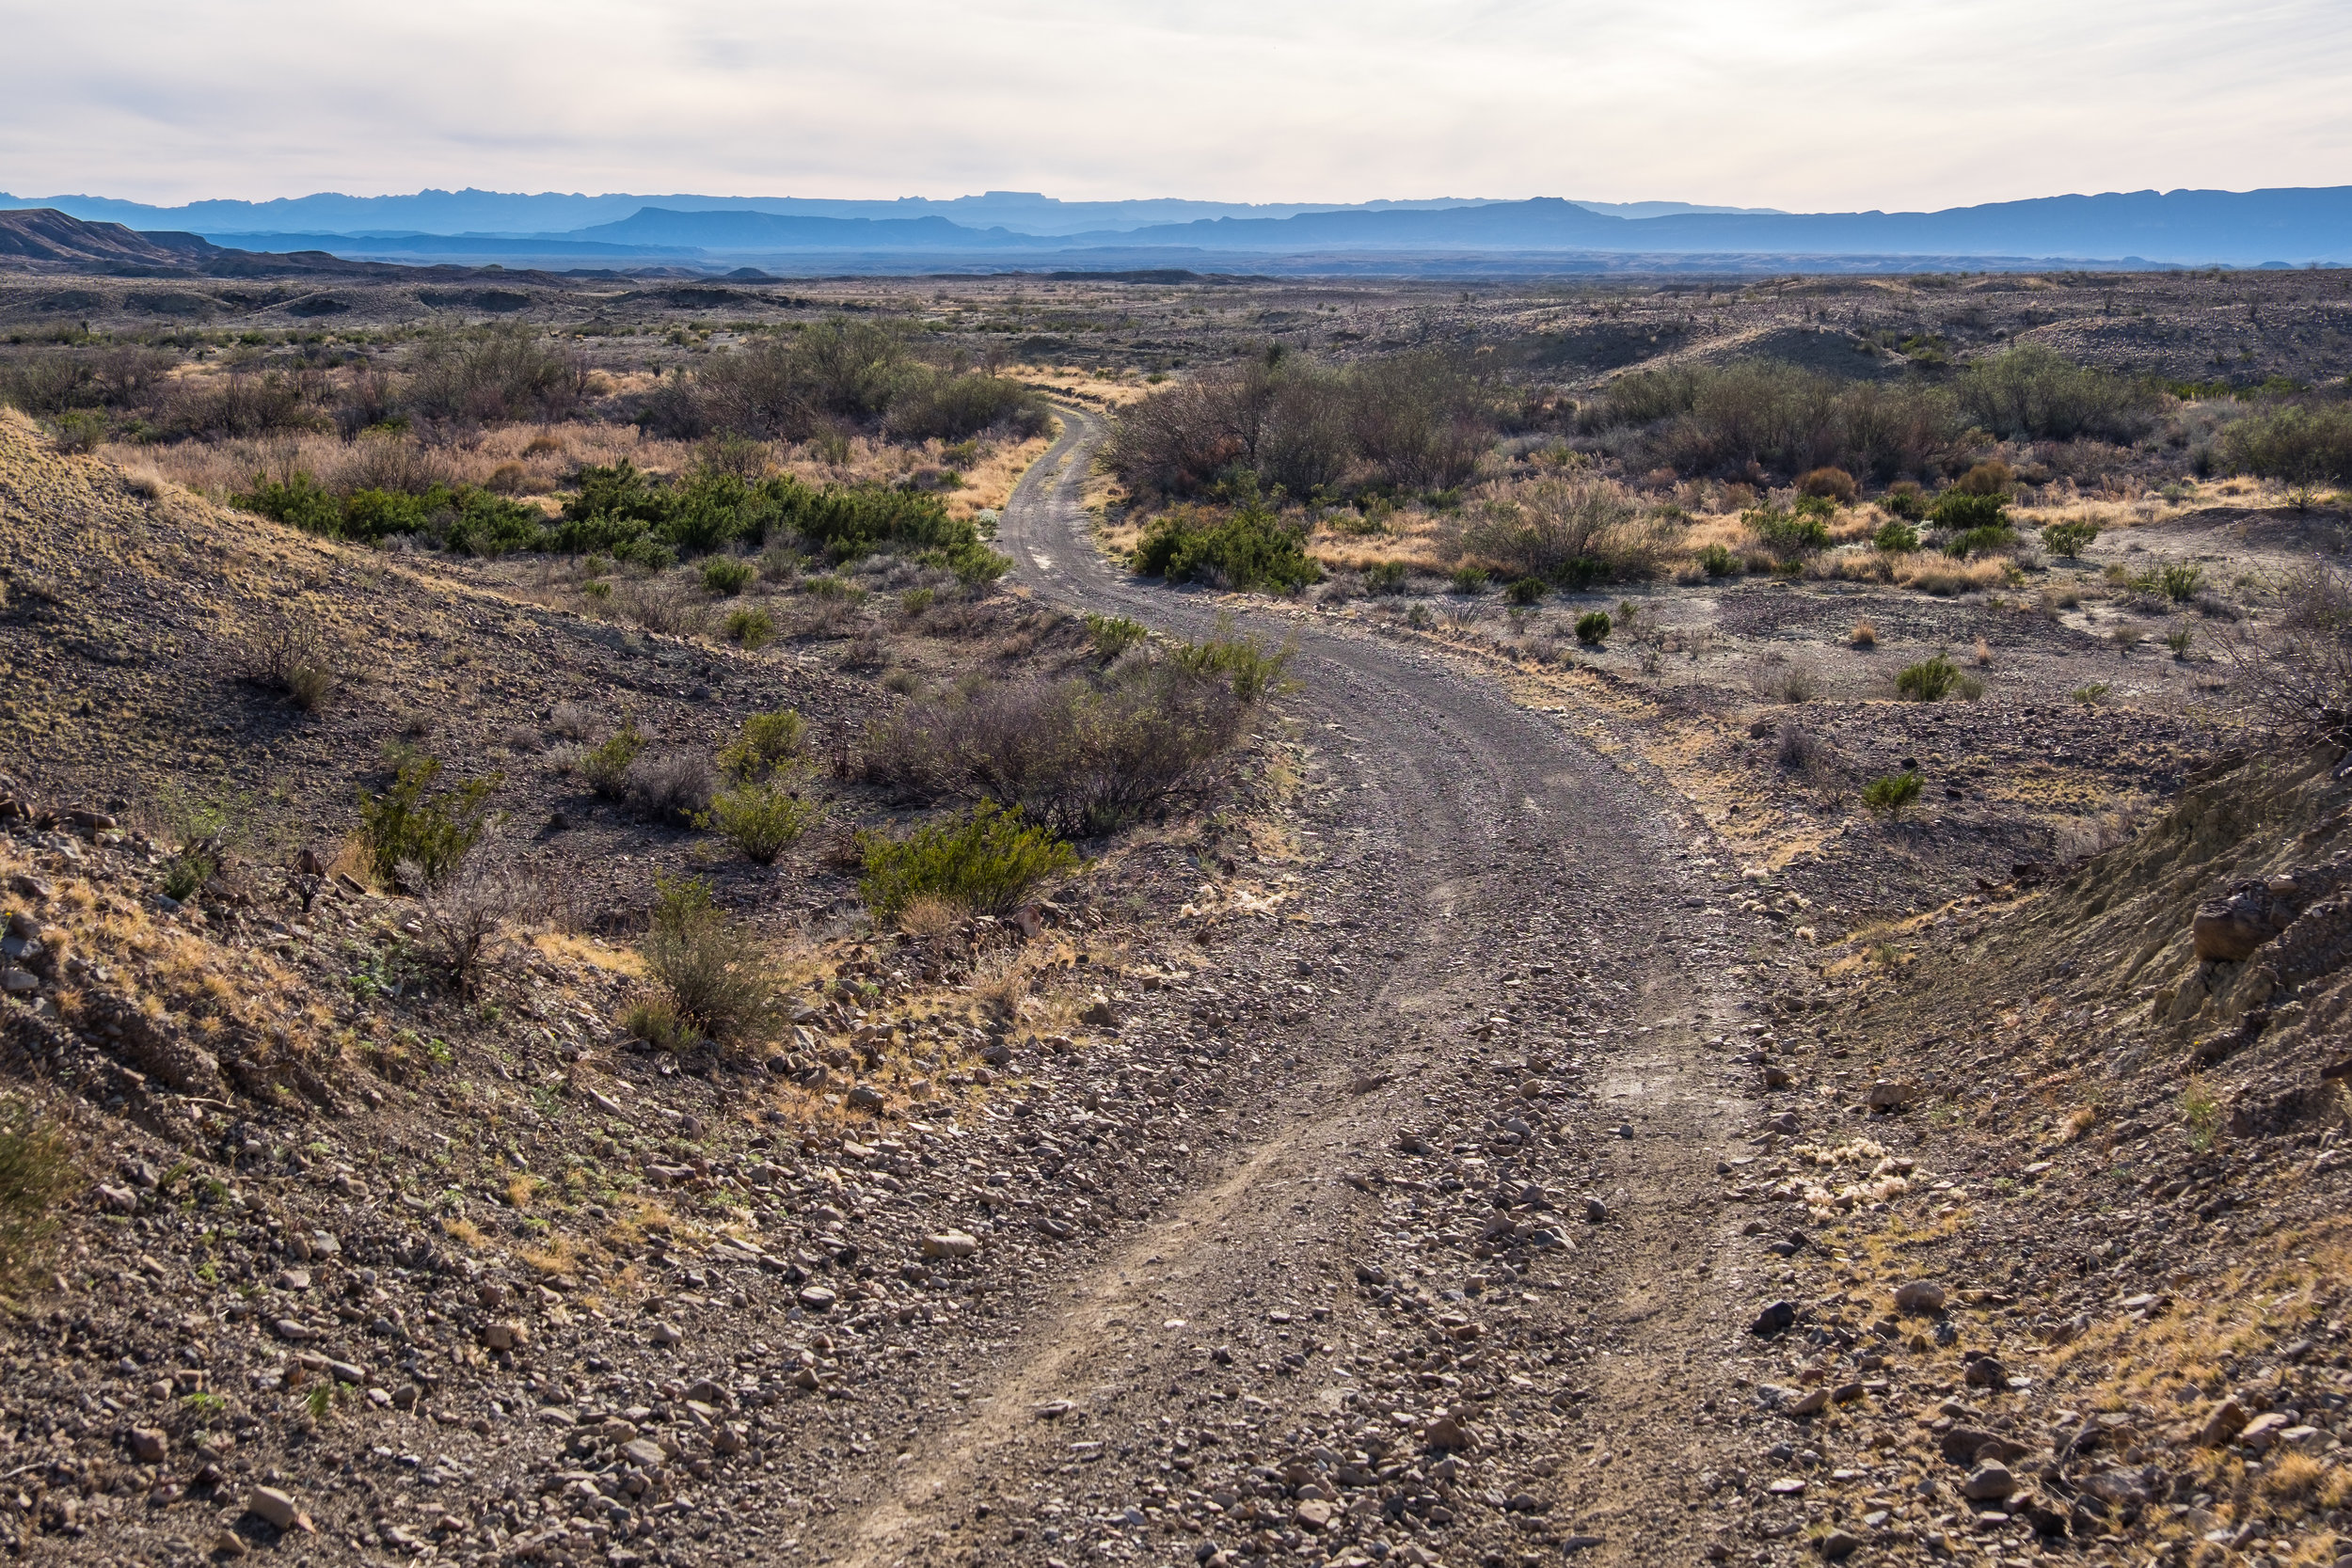 20160224-SP-Big Bend National Park-069-_DSF2749.jpg